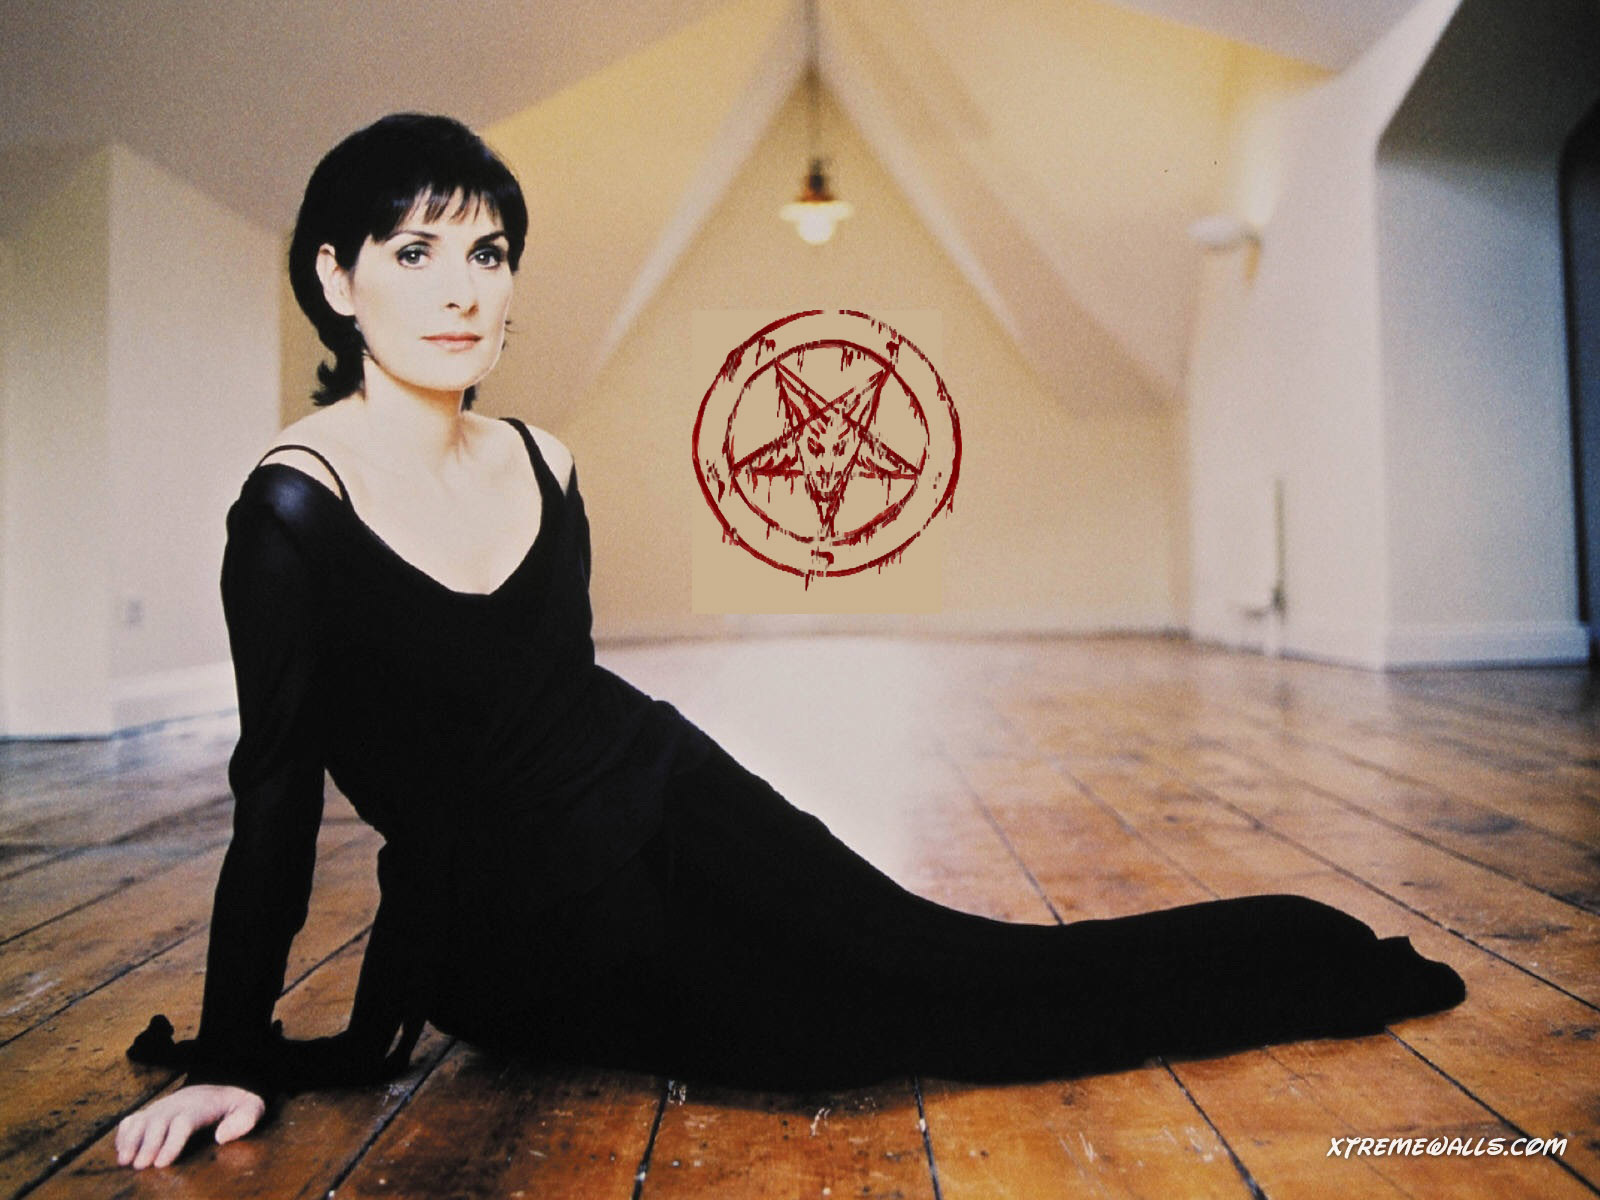 Praise Satan Enya Unleashes New Album Just In Time For